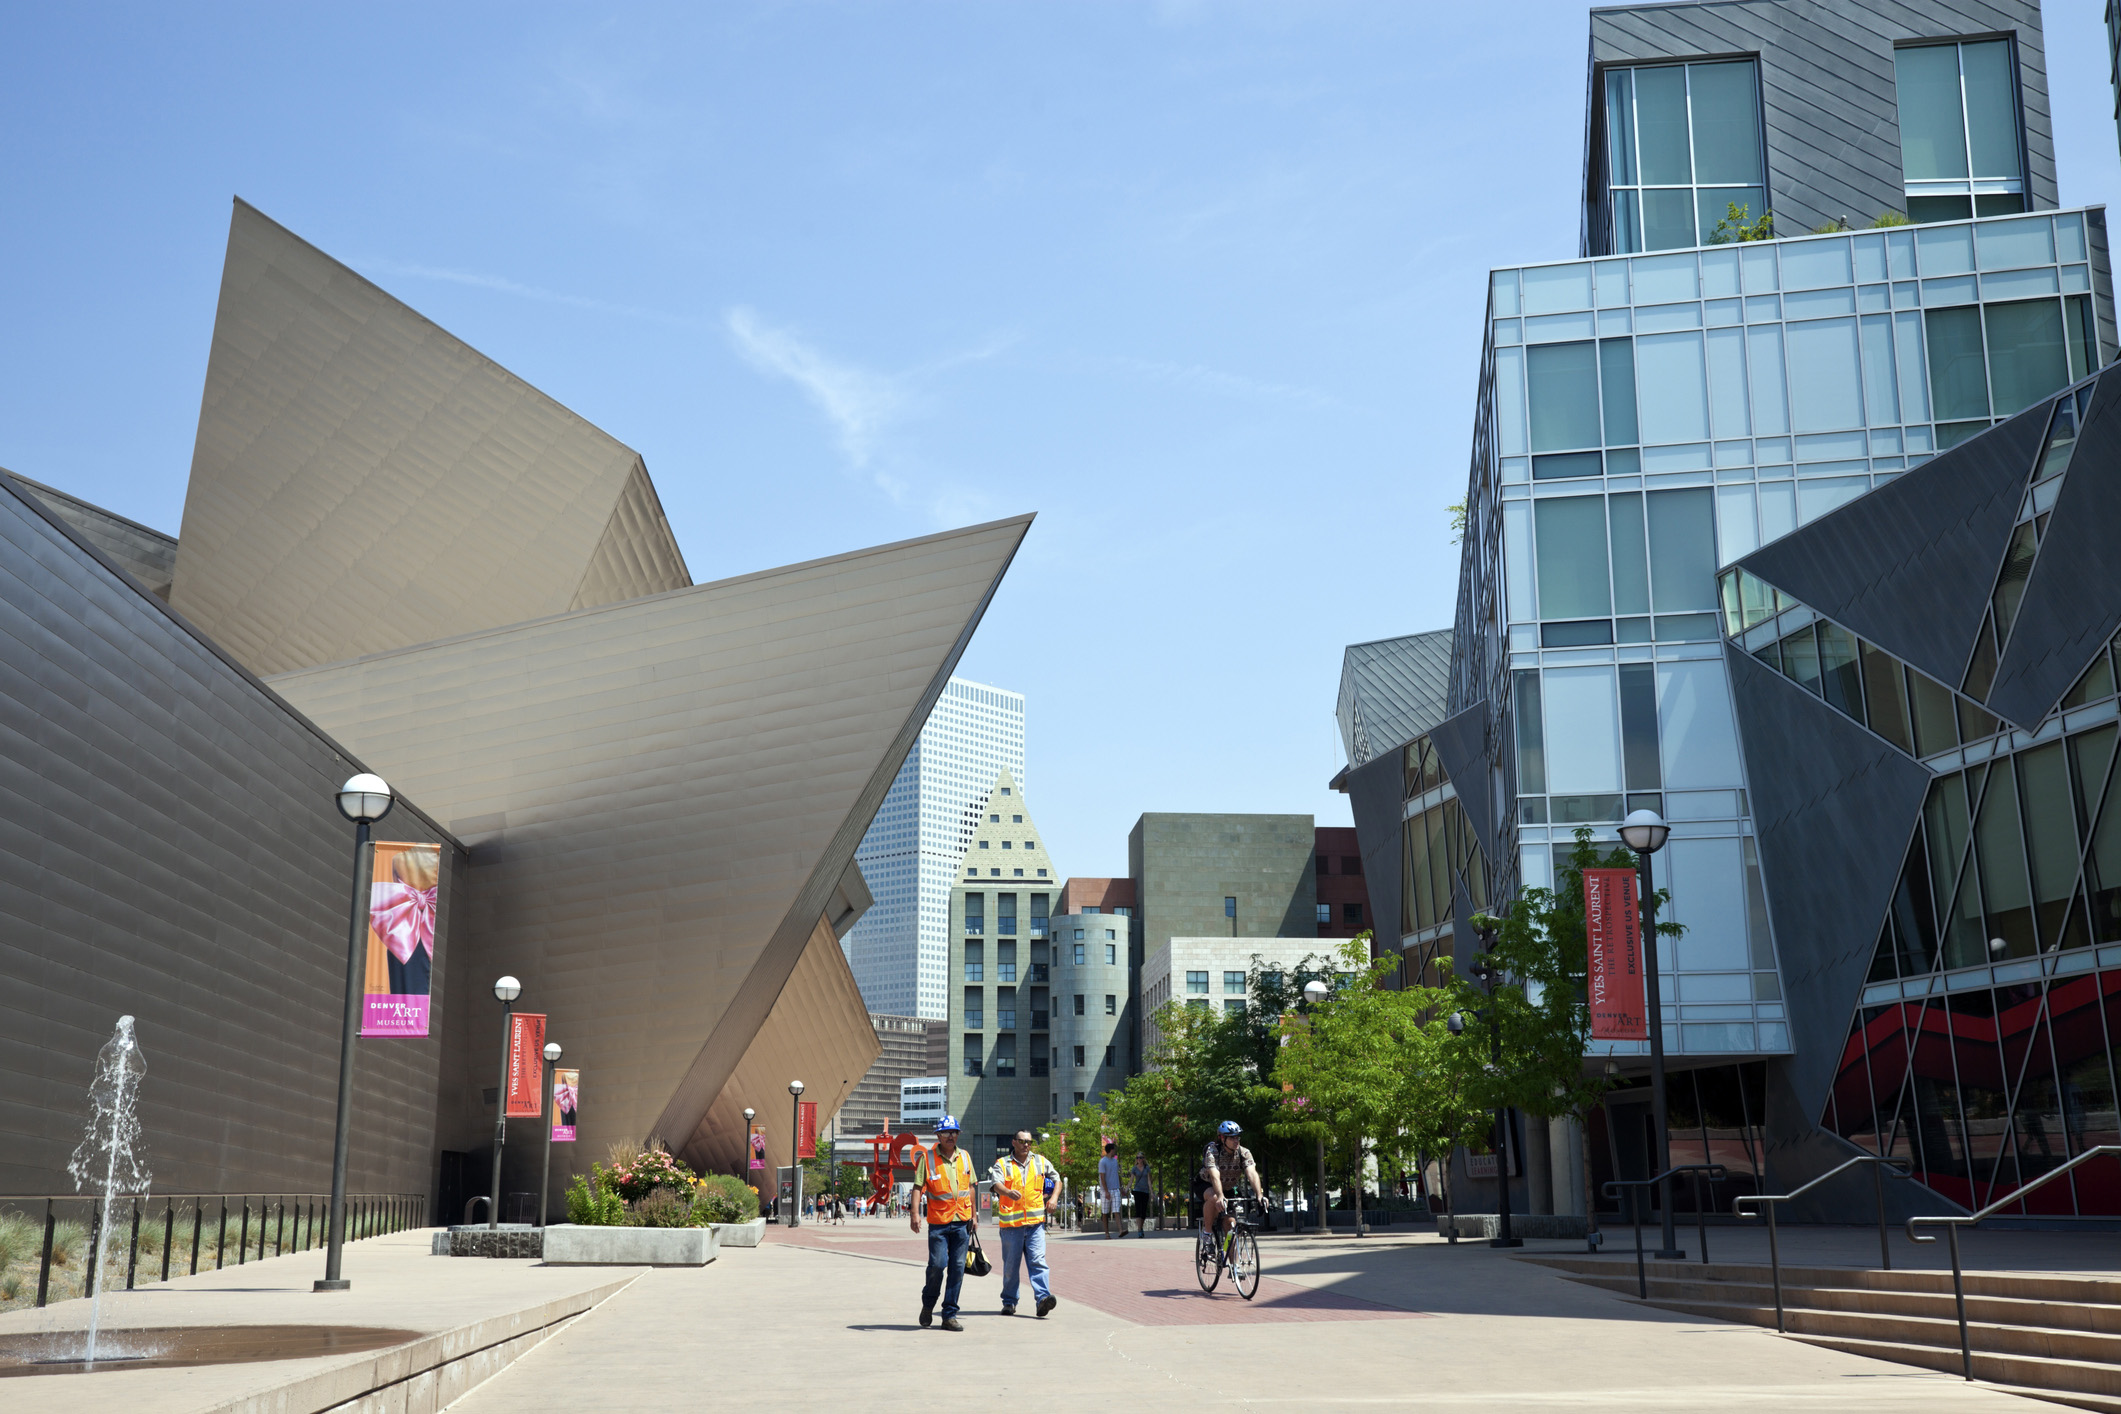 7 MustSee Museums in Denver  Travel  US News